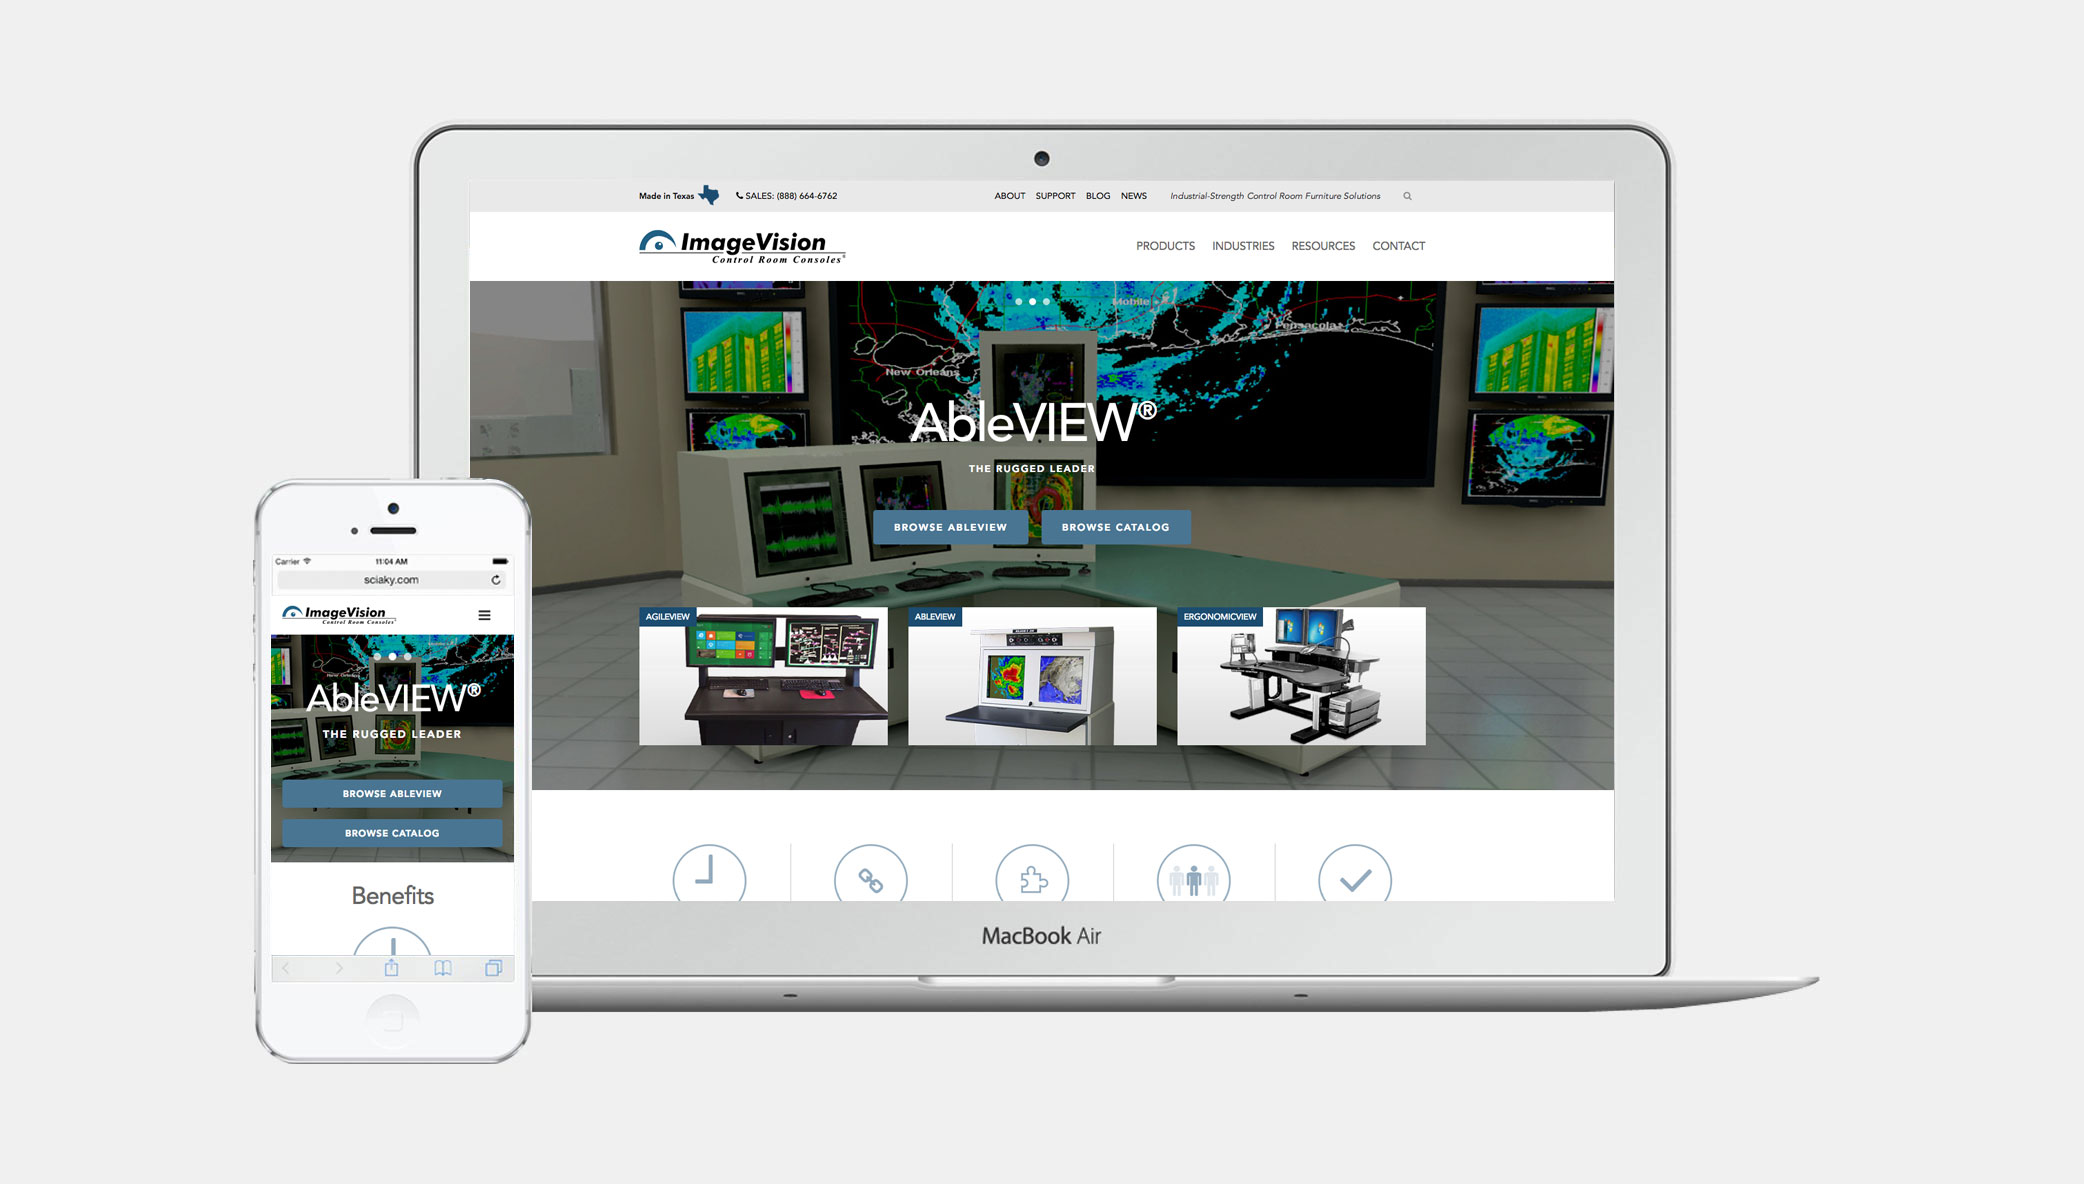 Stone Launches New Site for ImageVision, Inc.